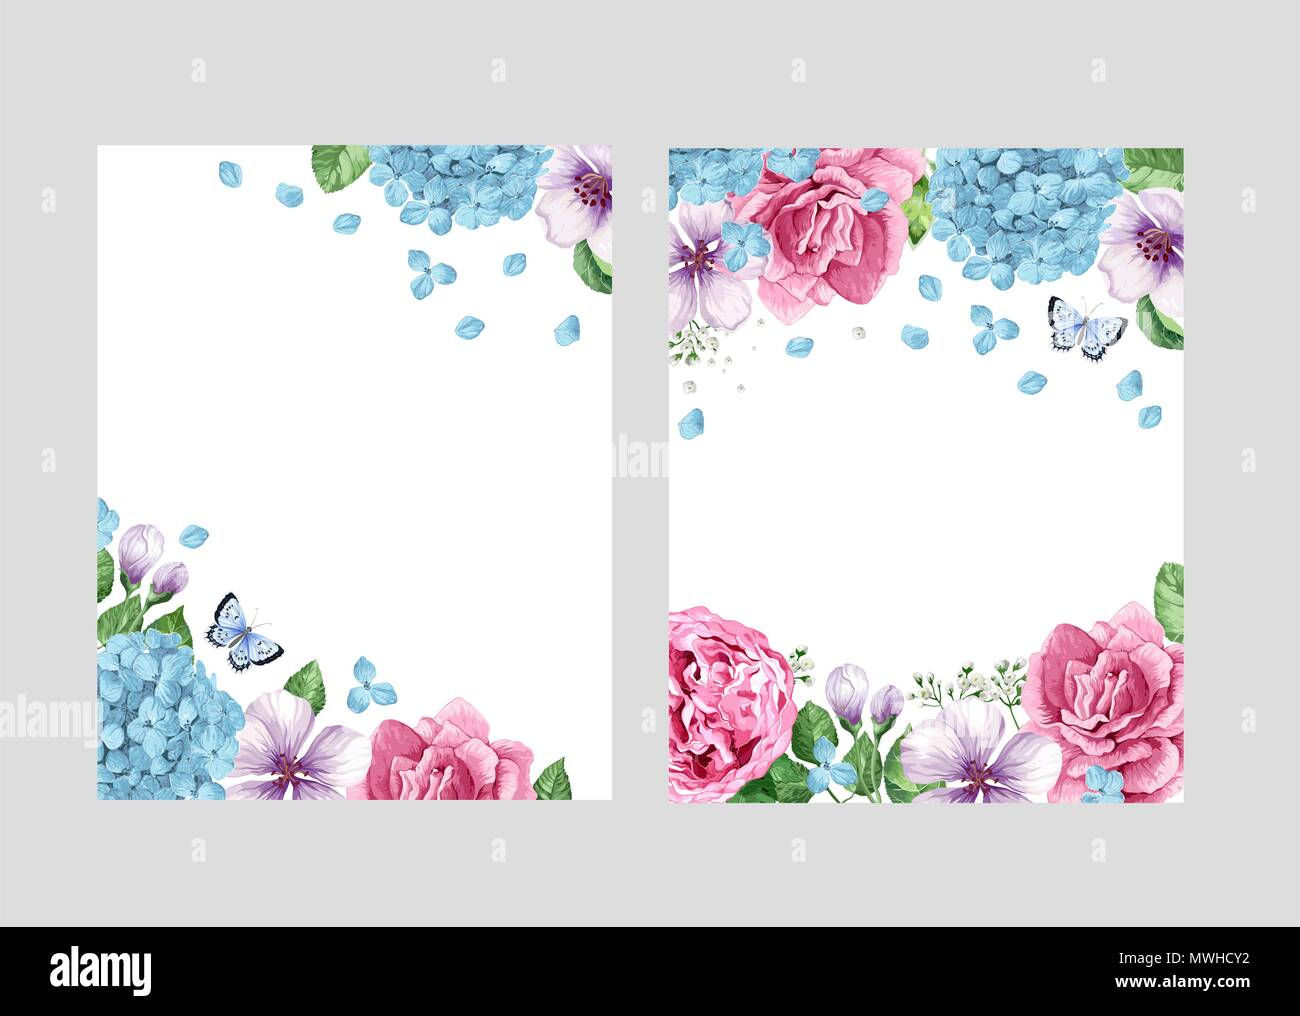 Floral Blank Template Set Flowers In Watercolor Style